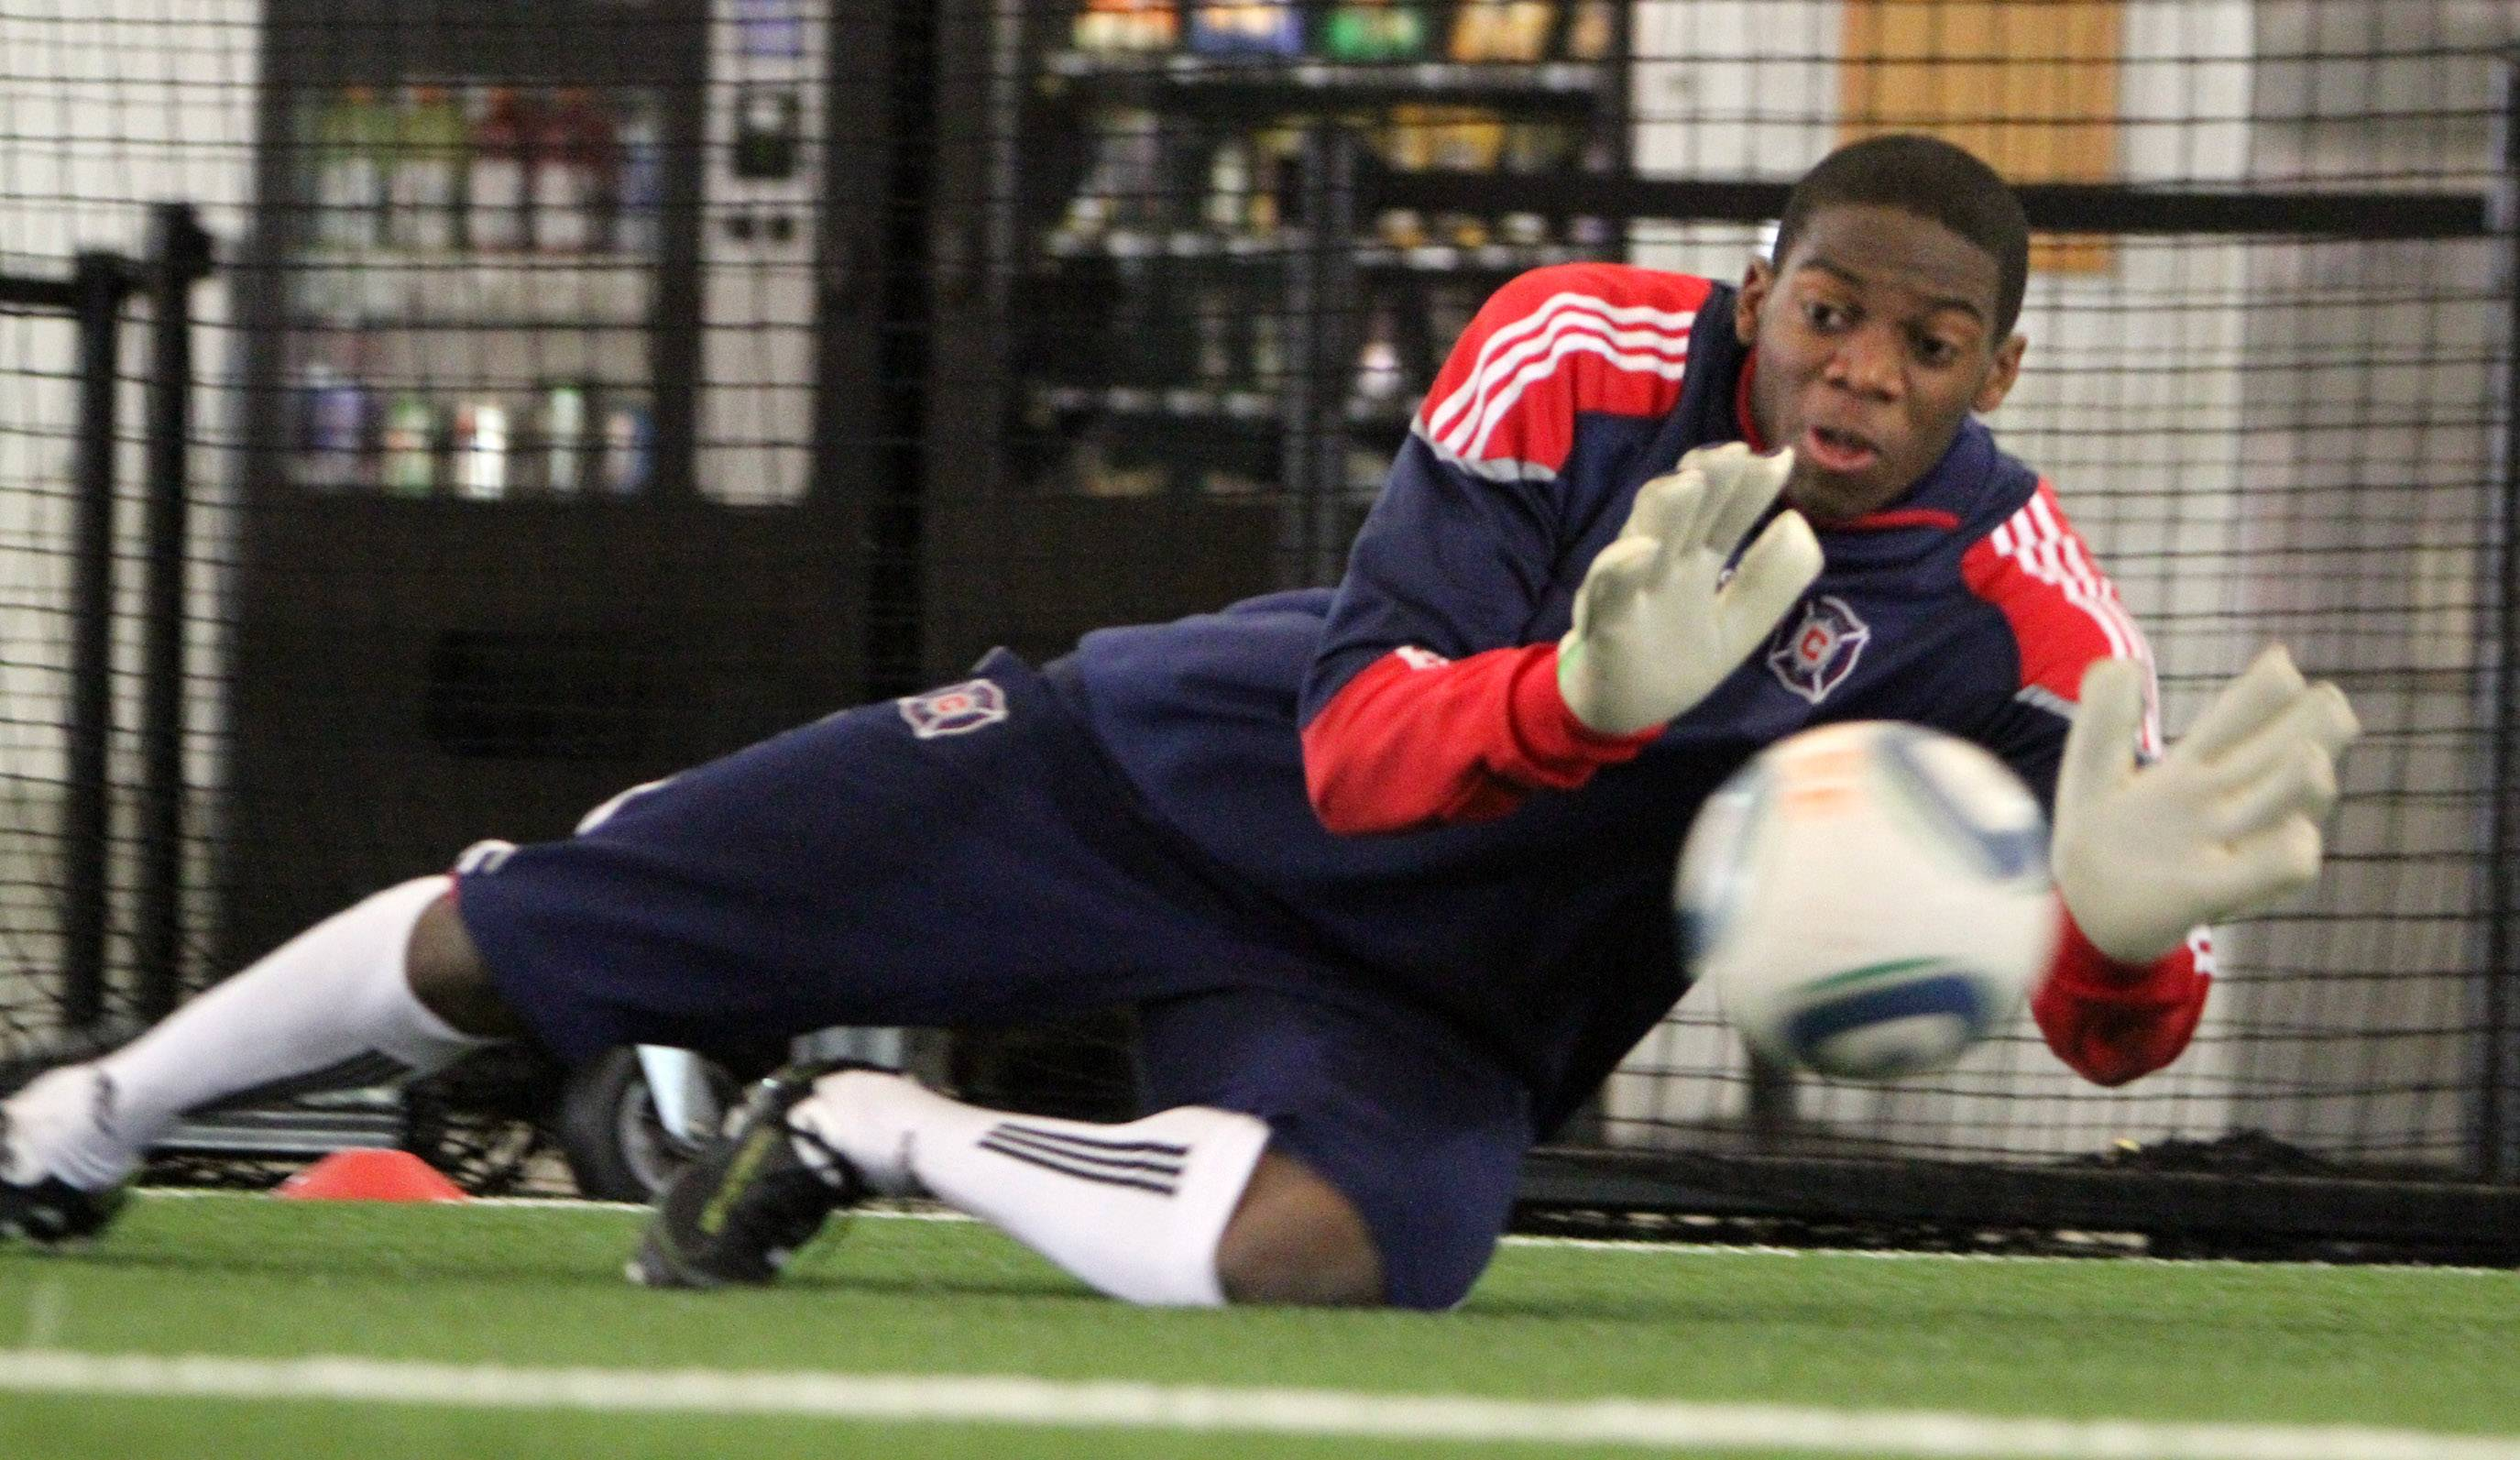 Chicago Fire goalkeeper Sean Johnson was left off the 30-man roster of U.S. players who will begin training for the World Cup on Wednesday at Stanford University.